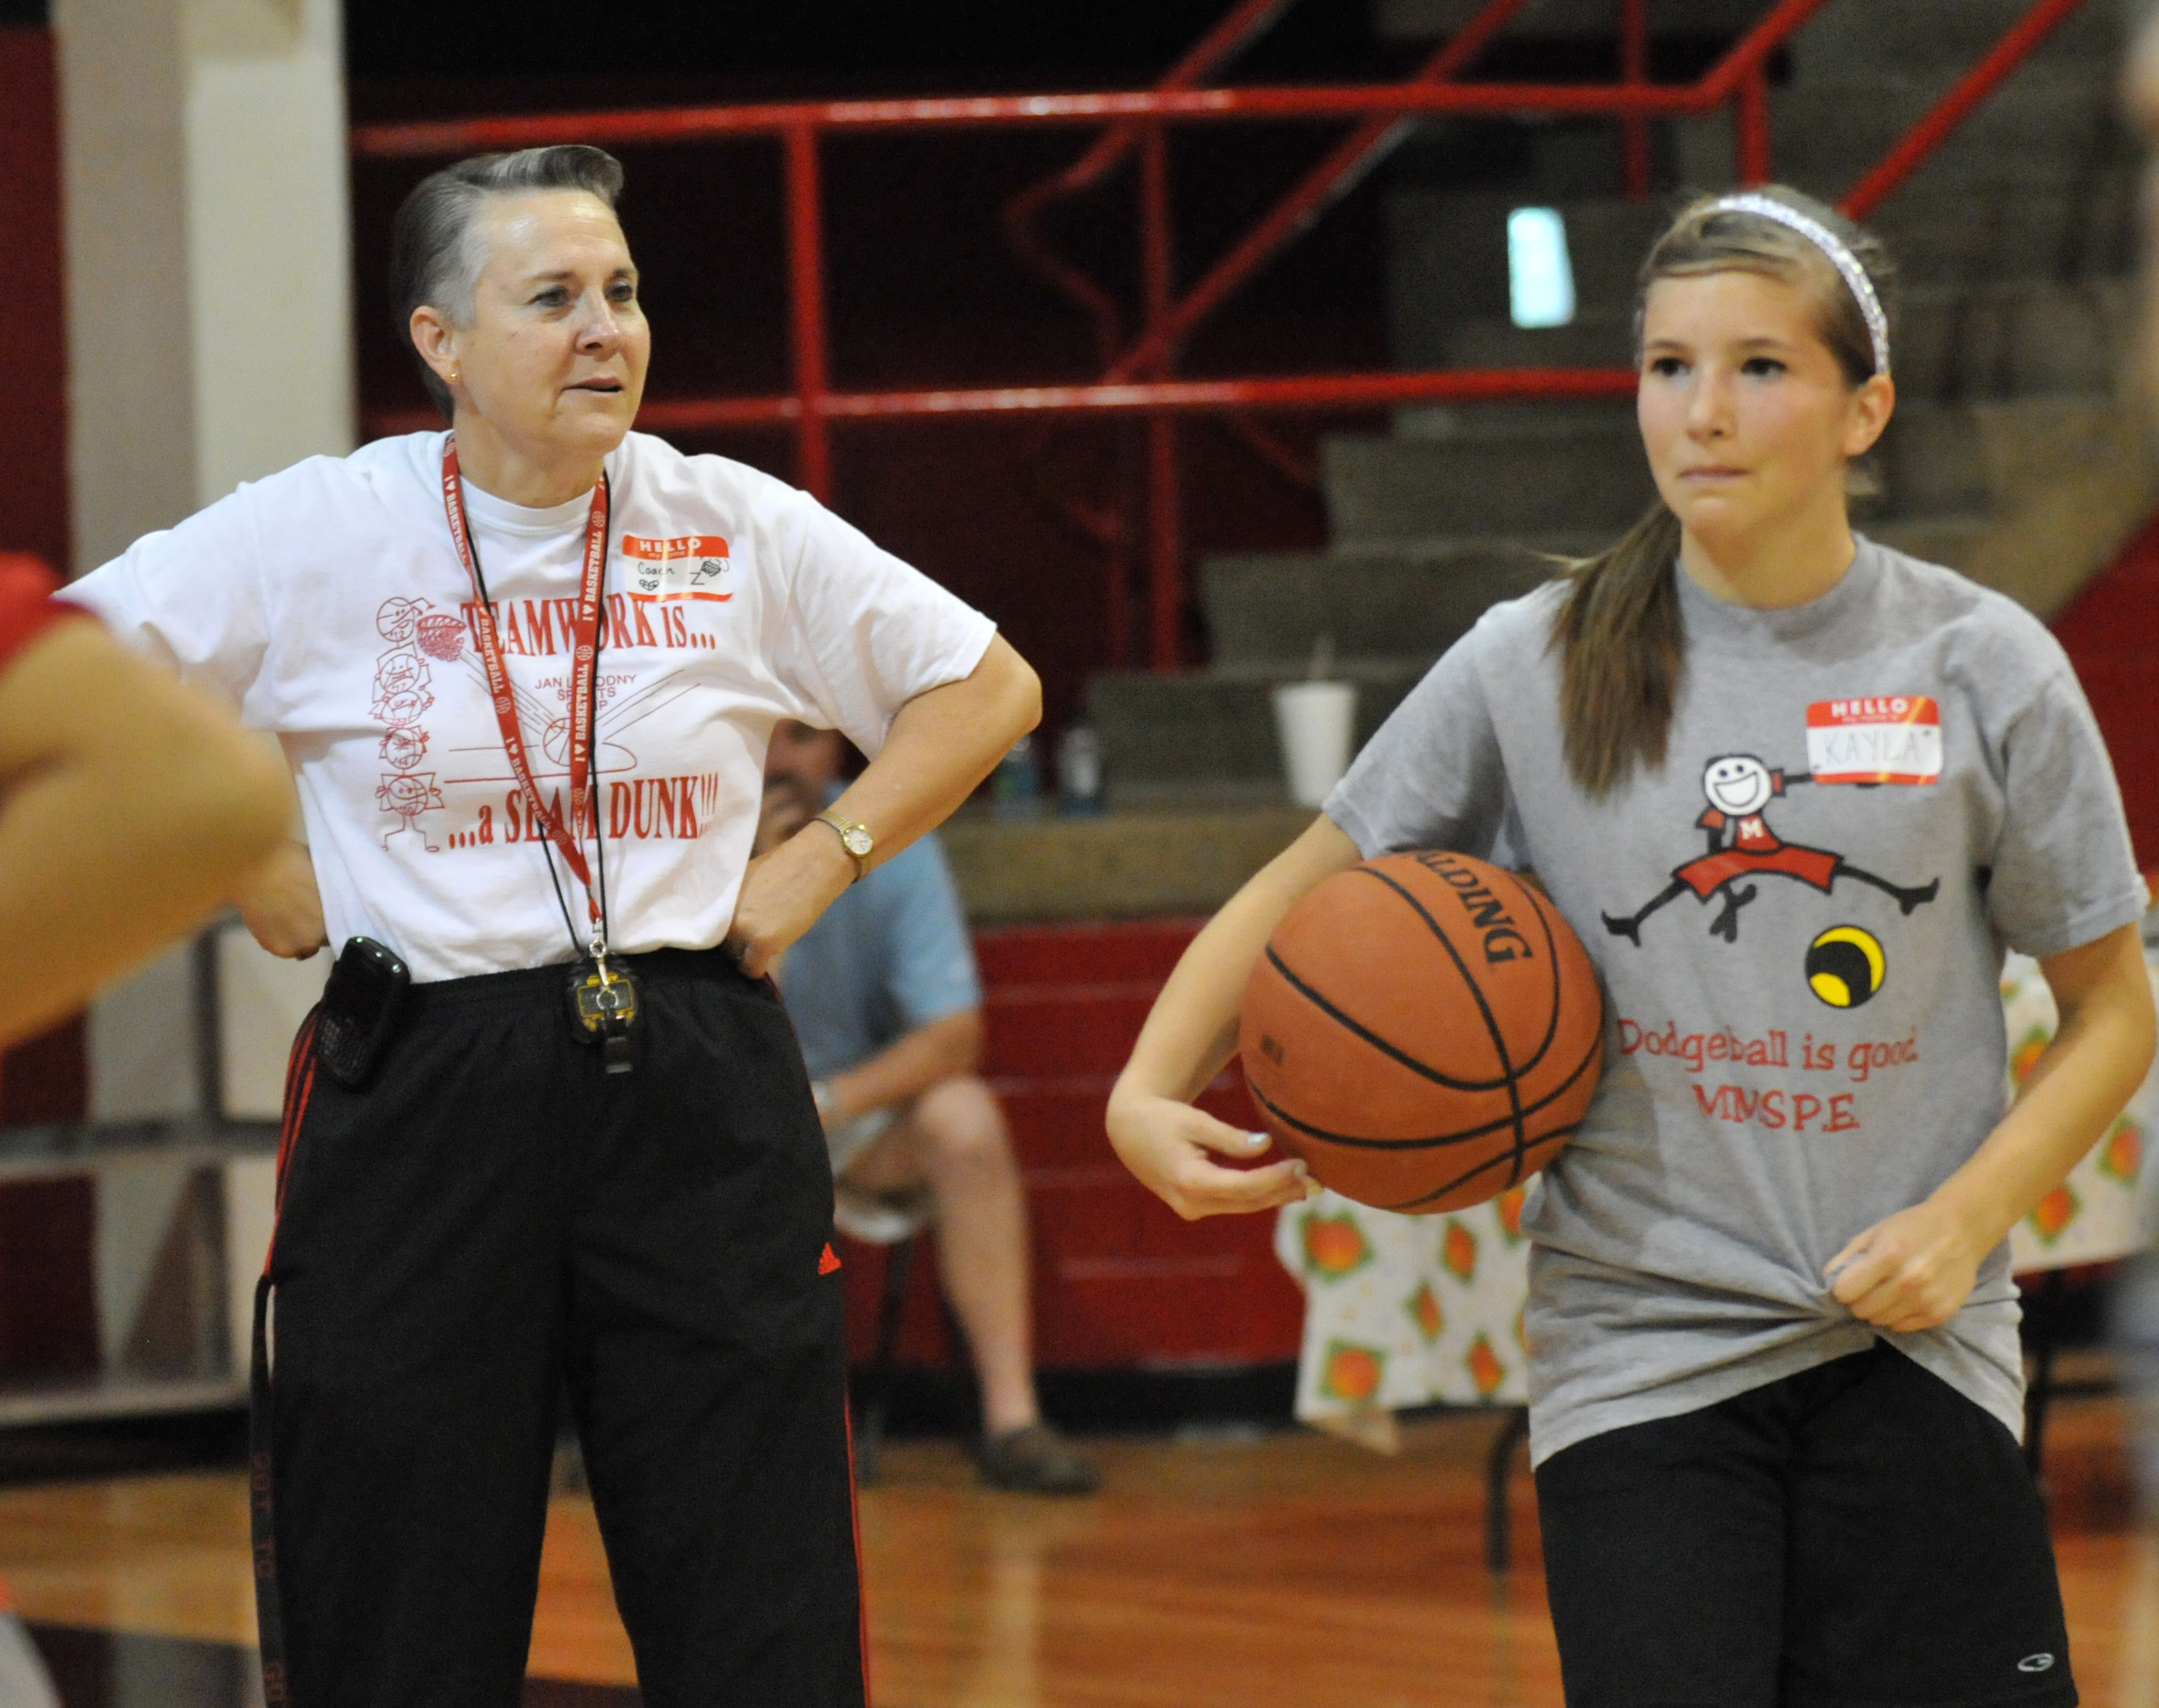 HHS girls' basketball coach selected as Region Junior Director of coaches association